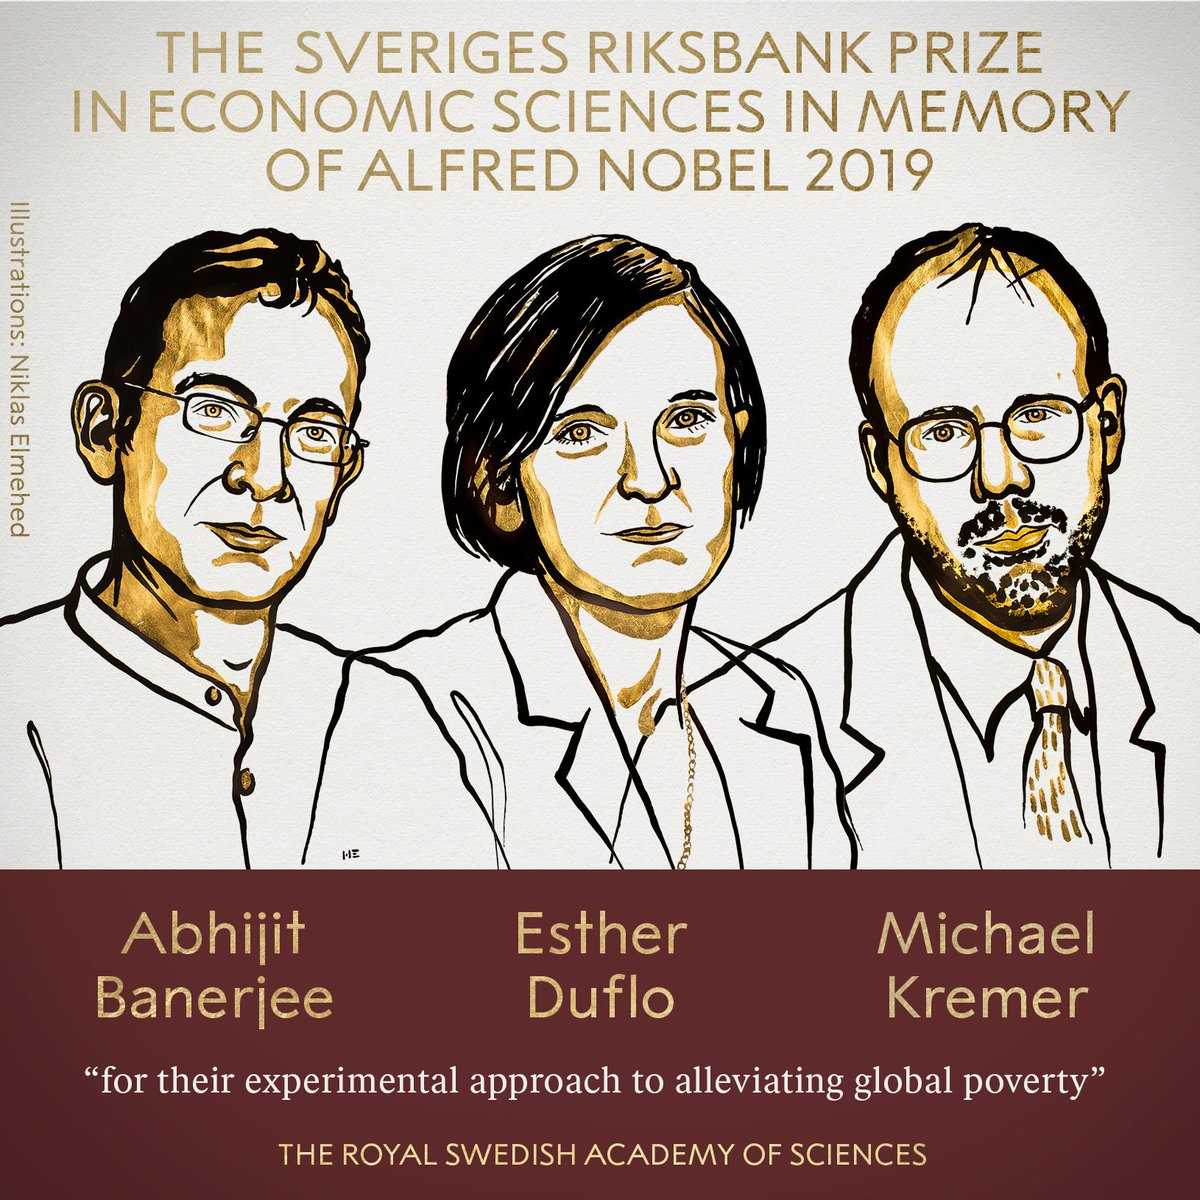 Congrats to academics who pioneered on-the-ground experiments to discover the most effective ways to tackle poverty in the developing world who have been awarded this year's Nobel prize for economics.